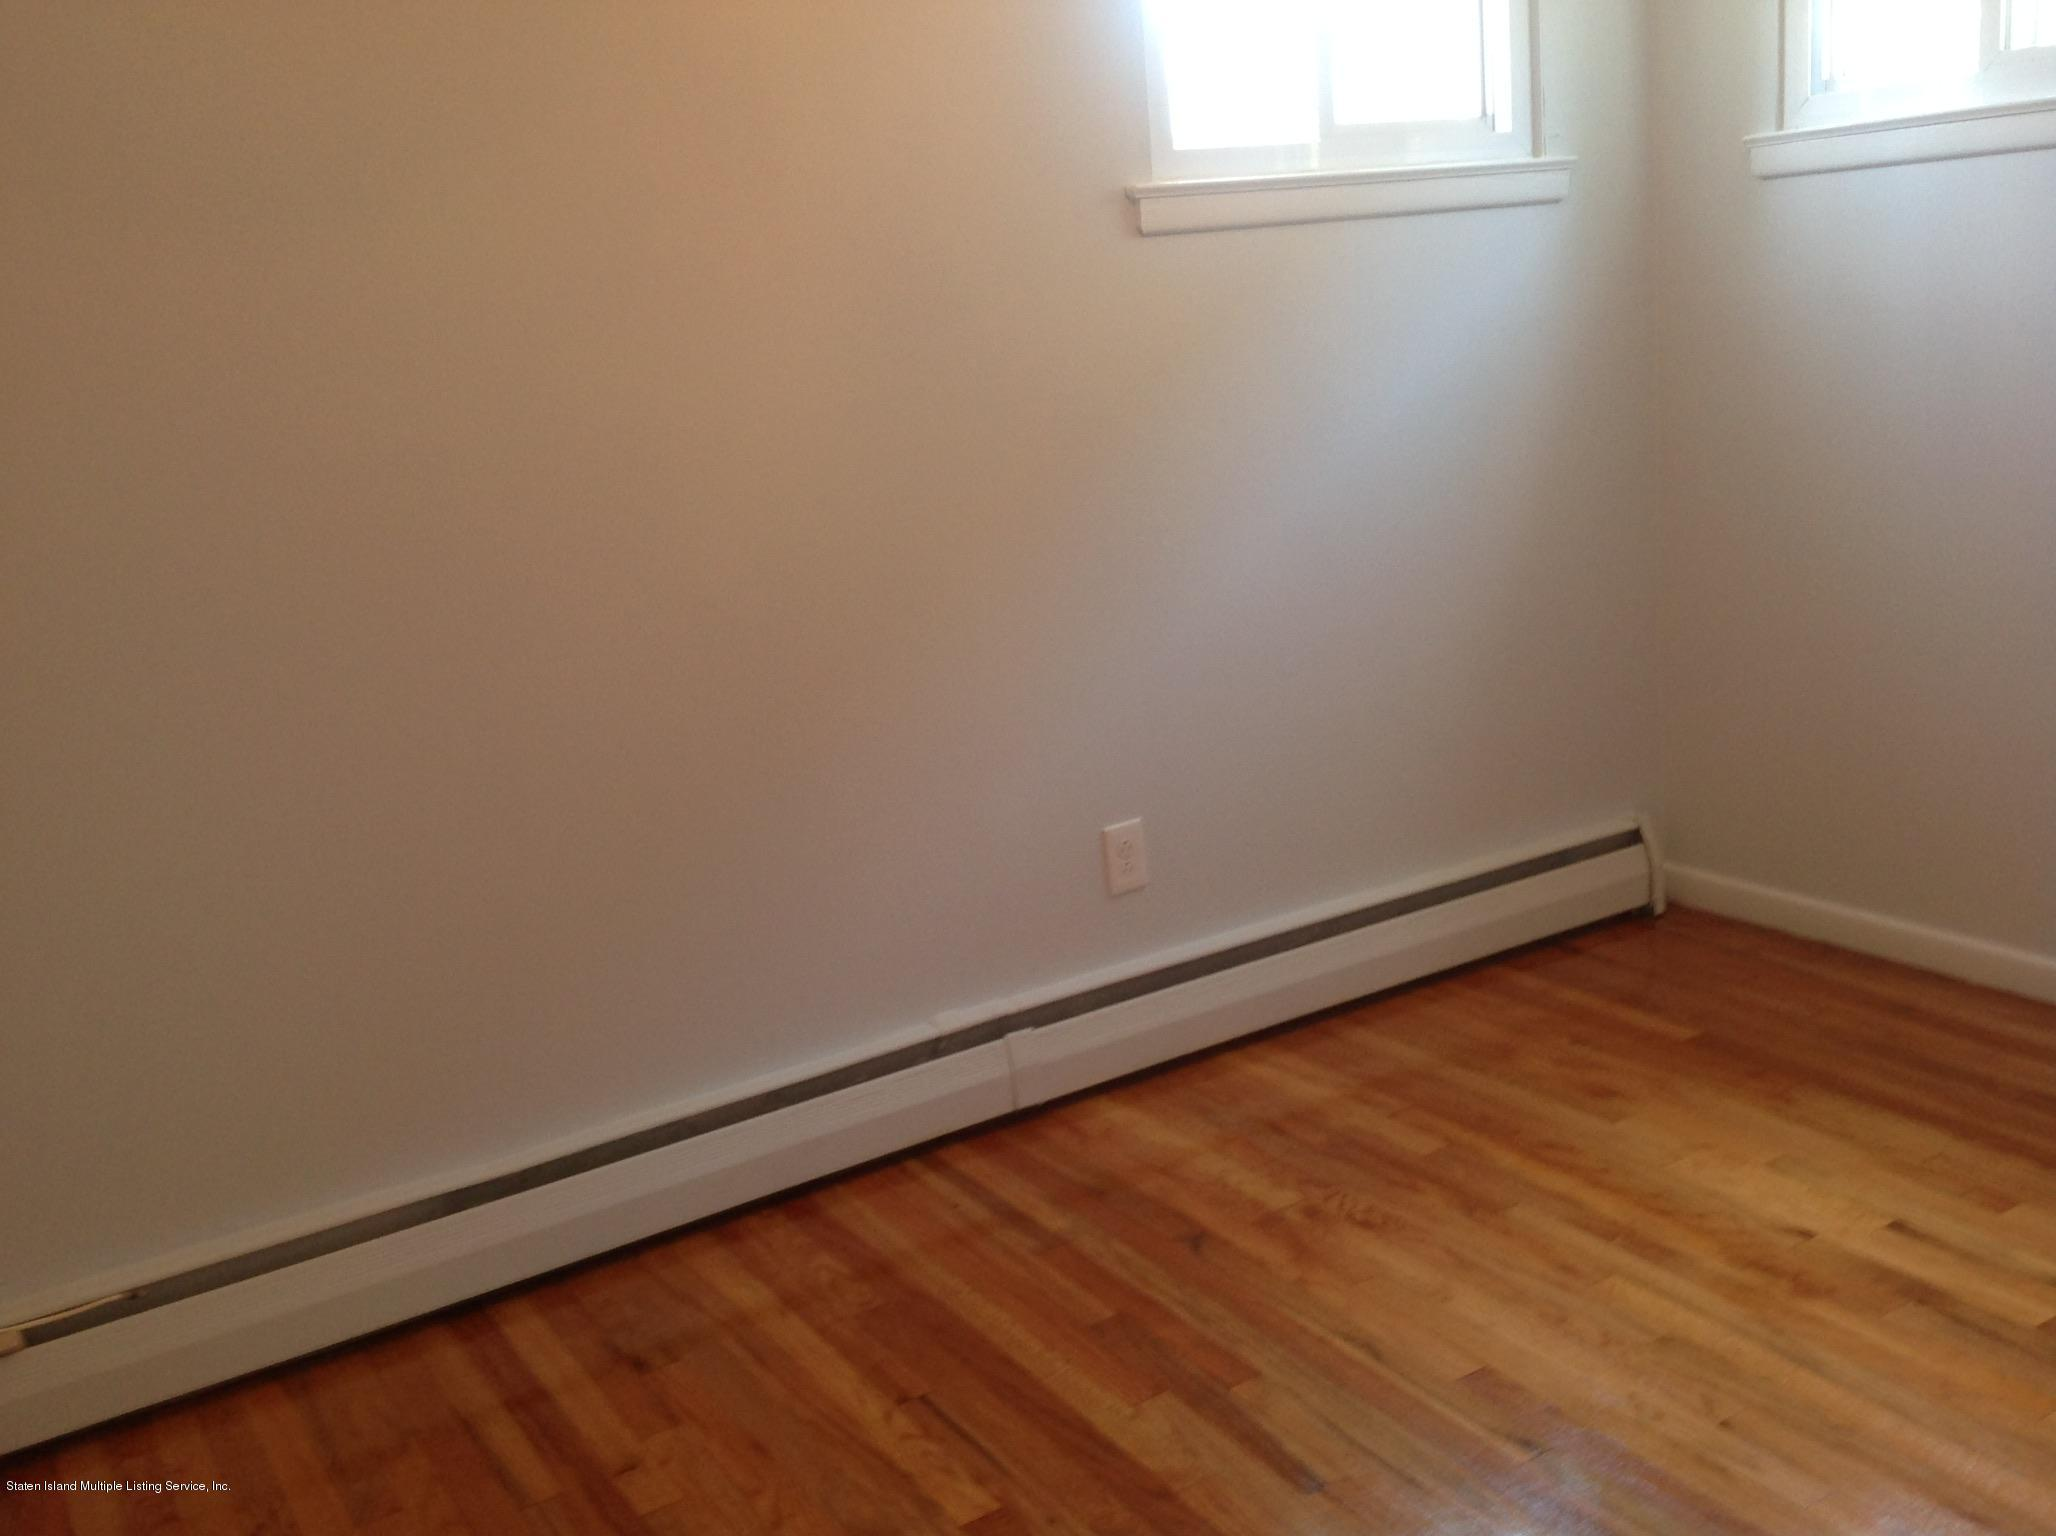 Single Family - Detached 28 Queen Street  Staten Island, NY 10314, MLS-1148779-16